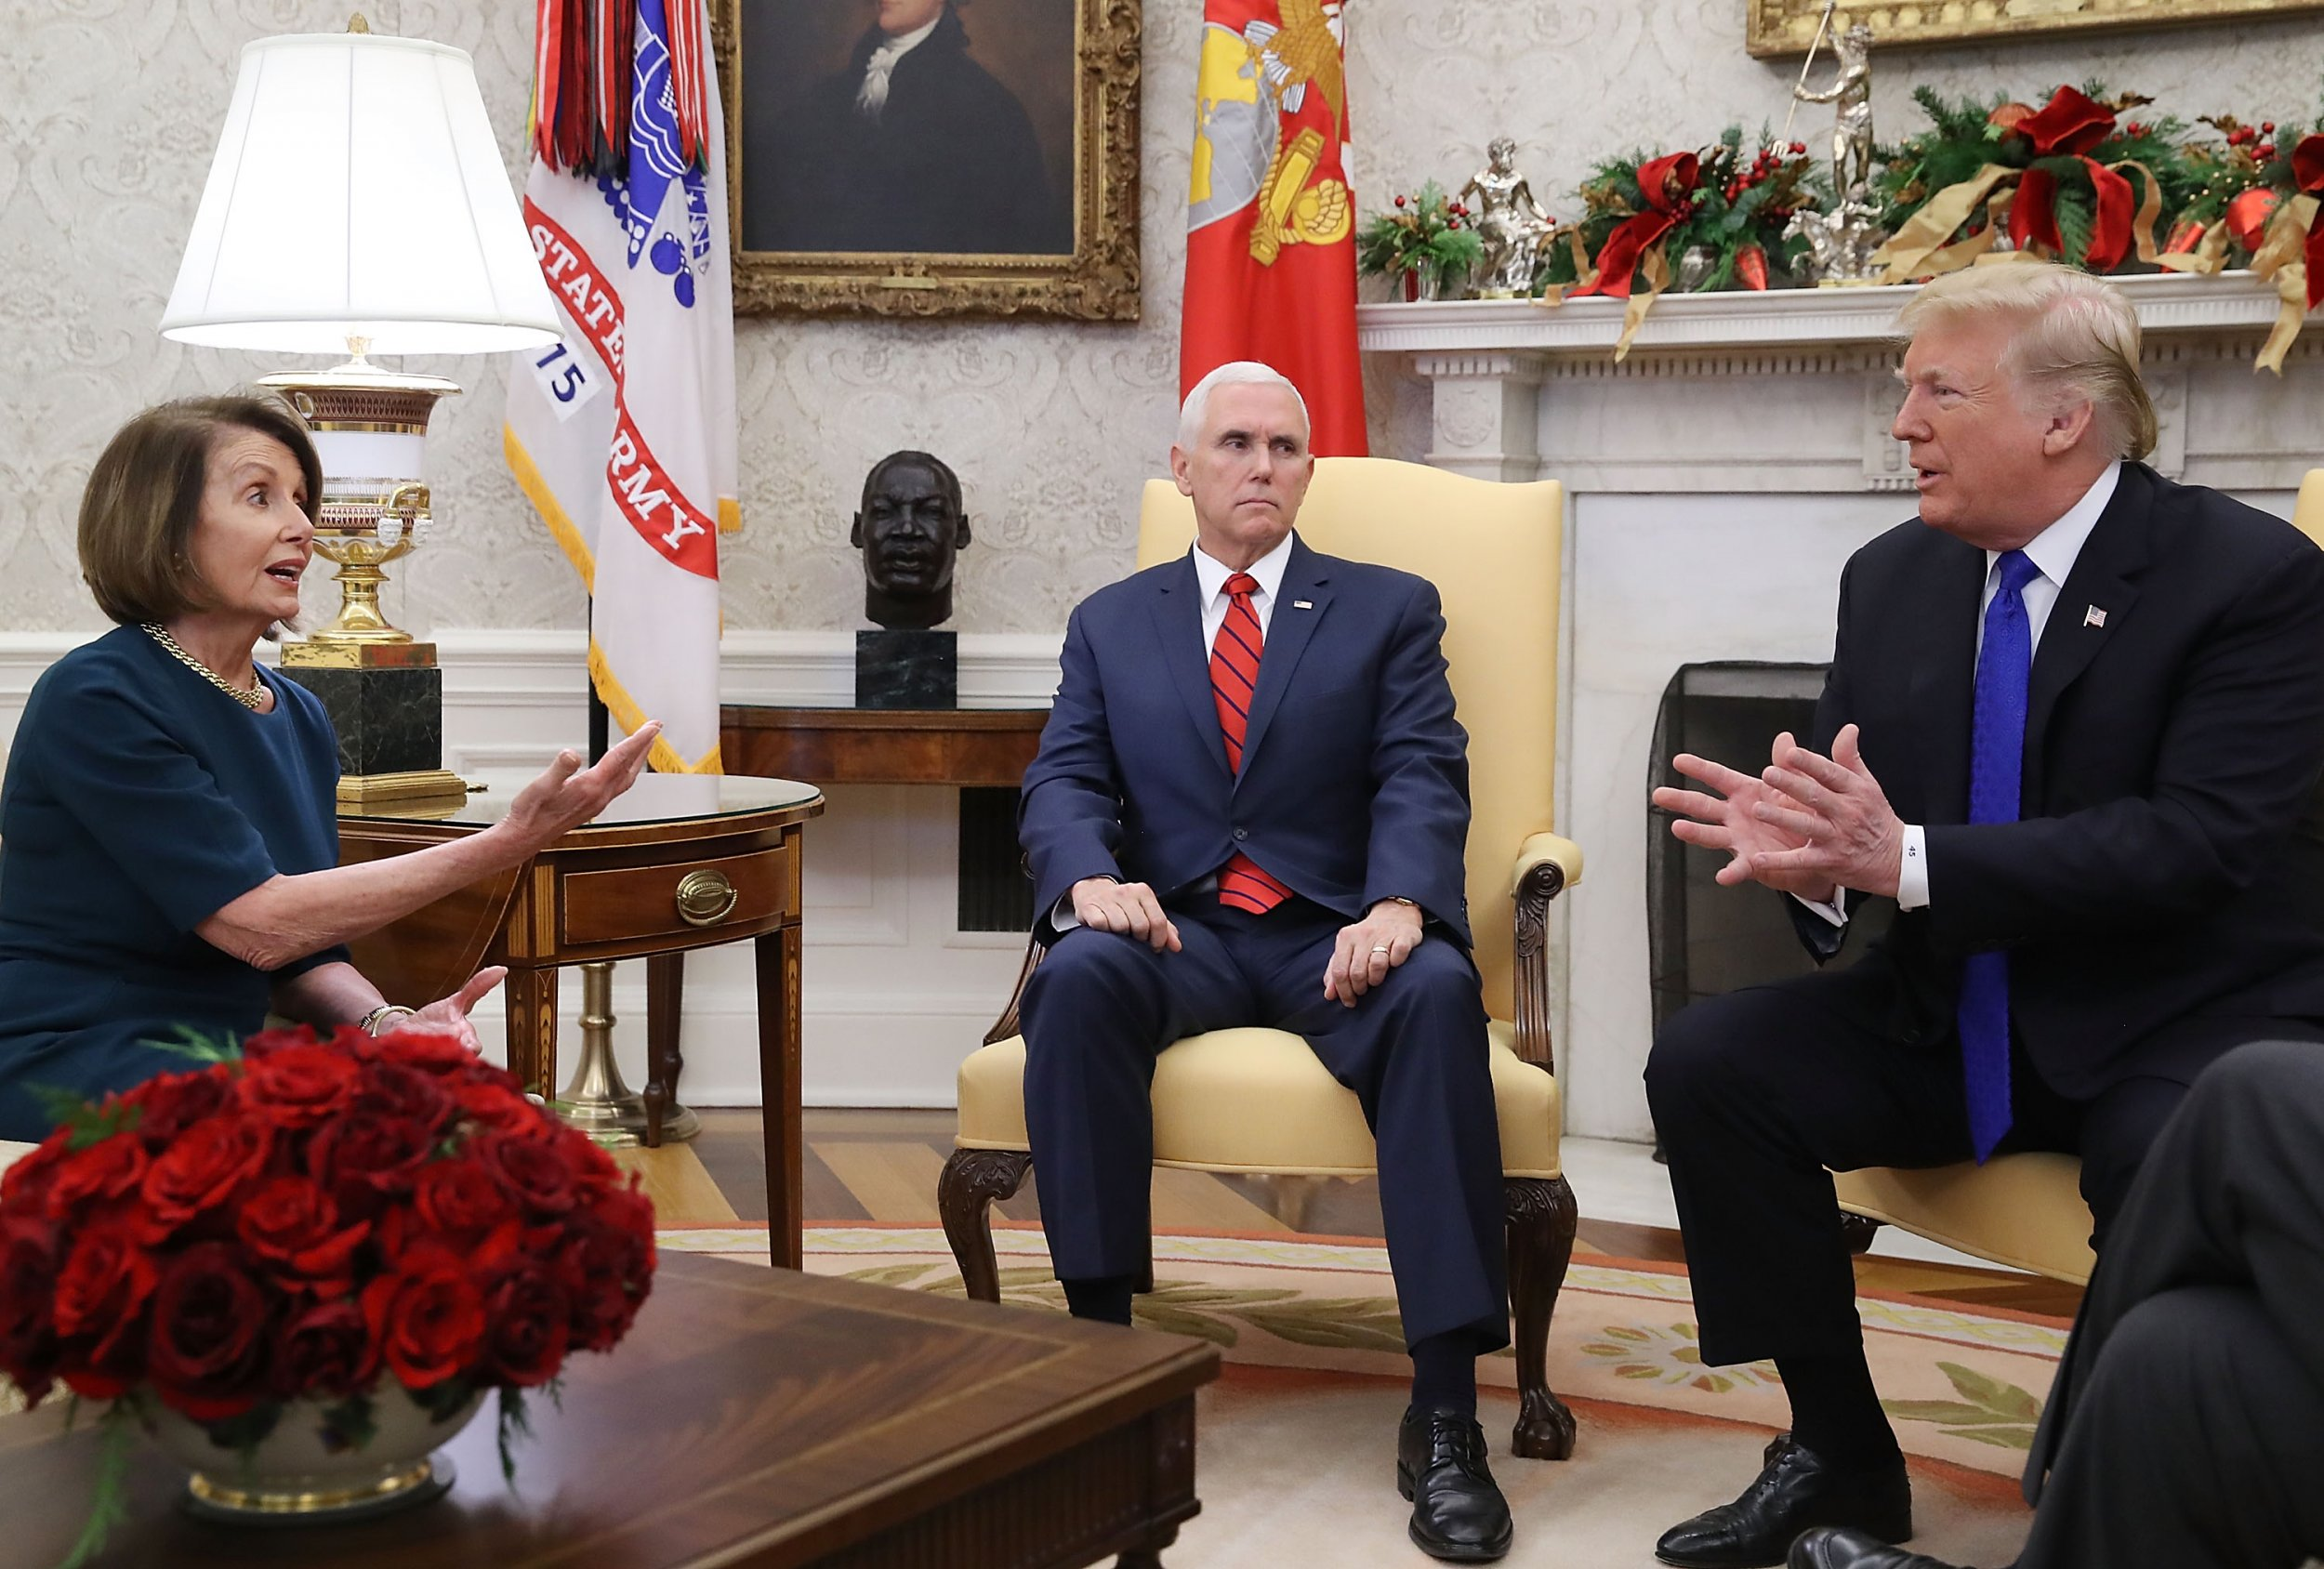 Trump vs Pelosi: manspreading, patriarchy, oval office